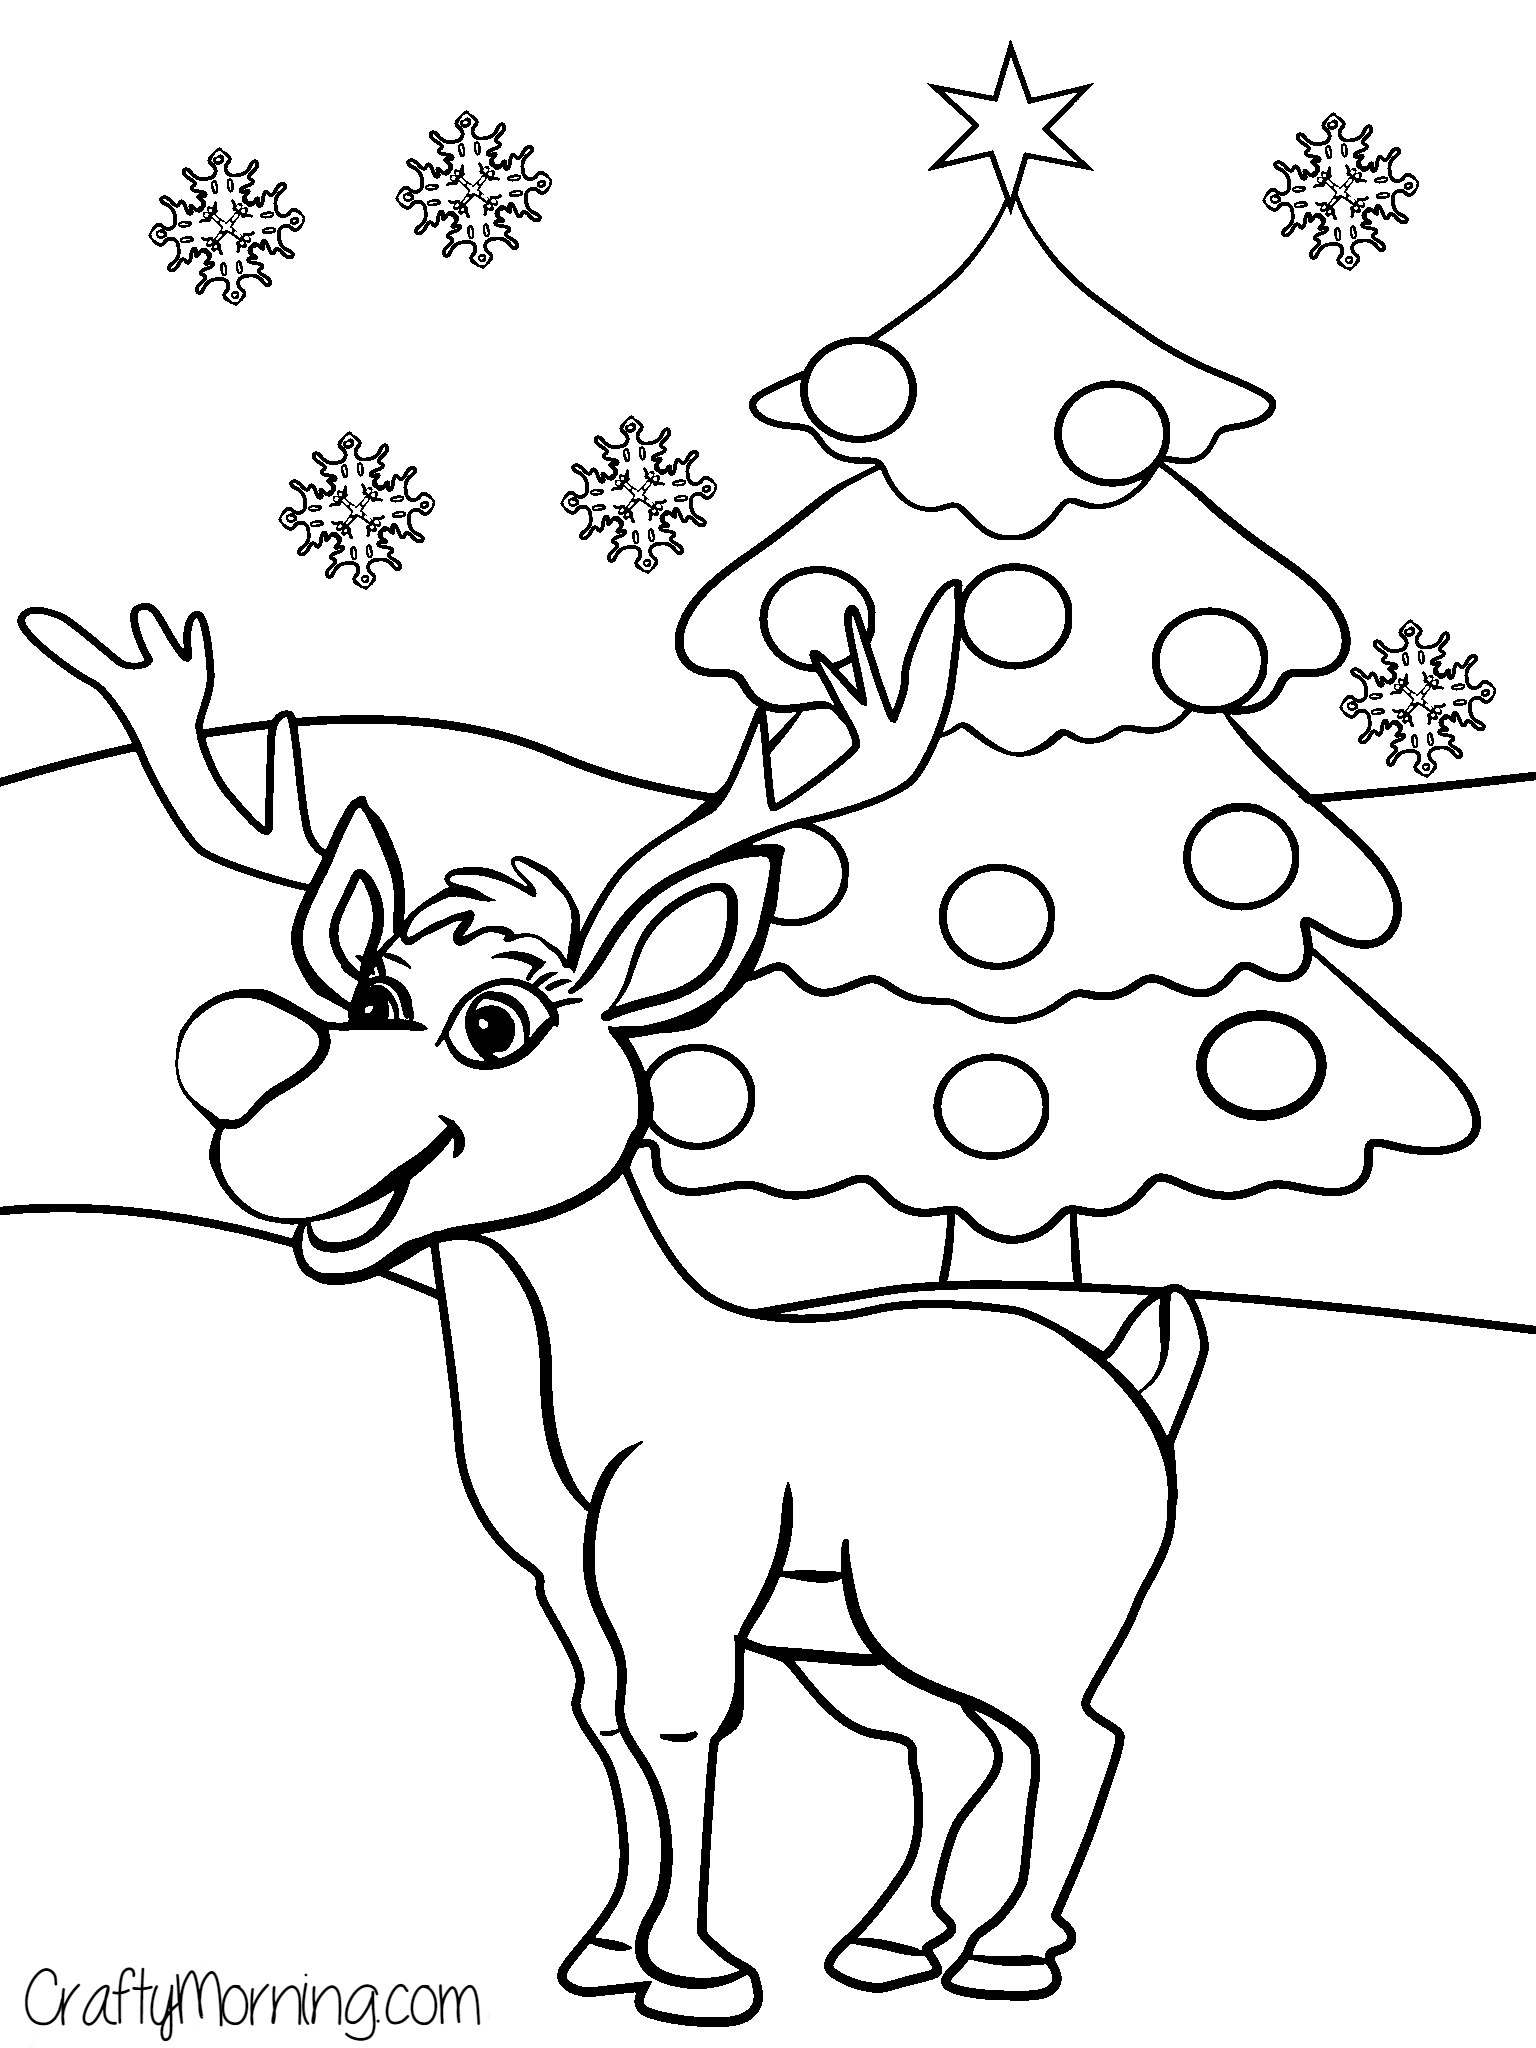 rudolph reindeer coloring page | christmas animals and trees | Pinterest